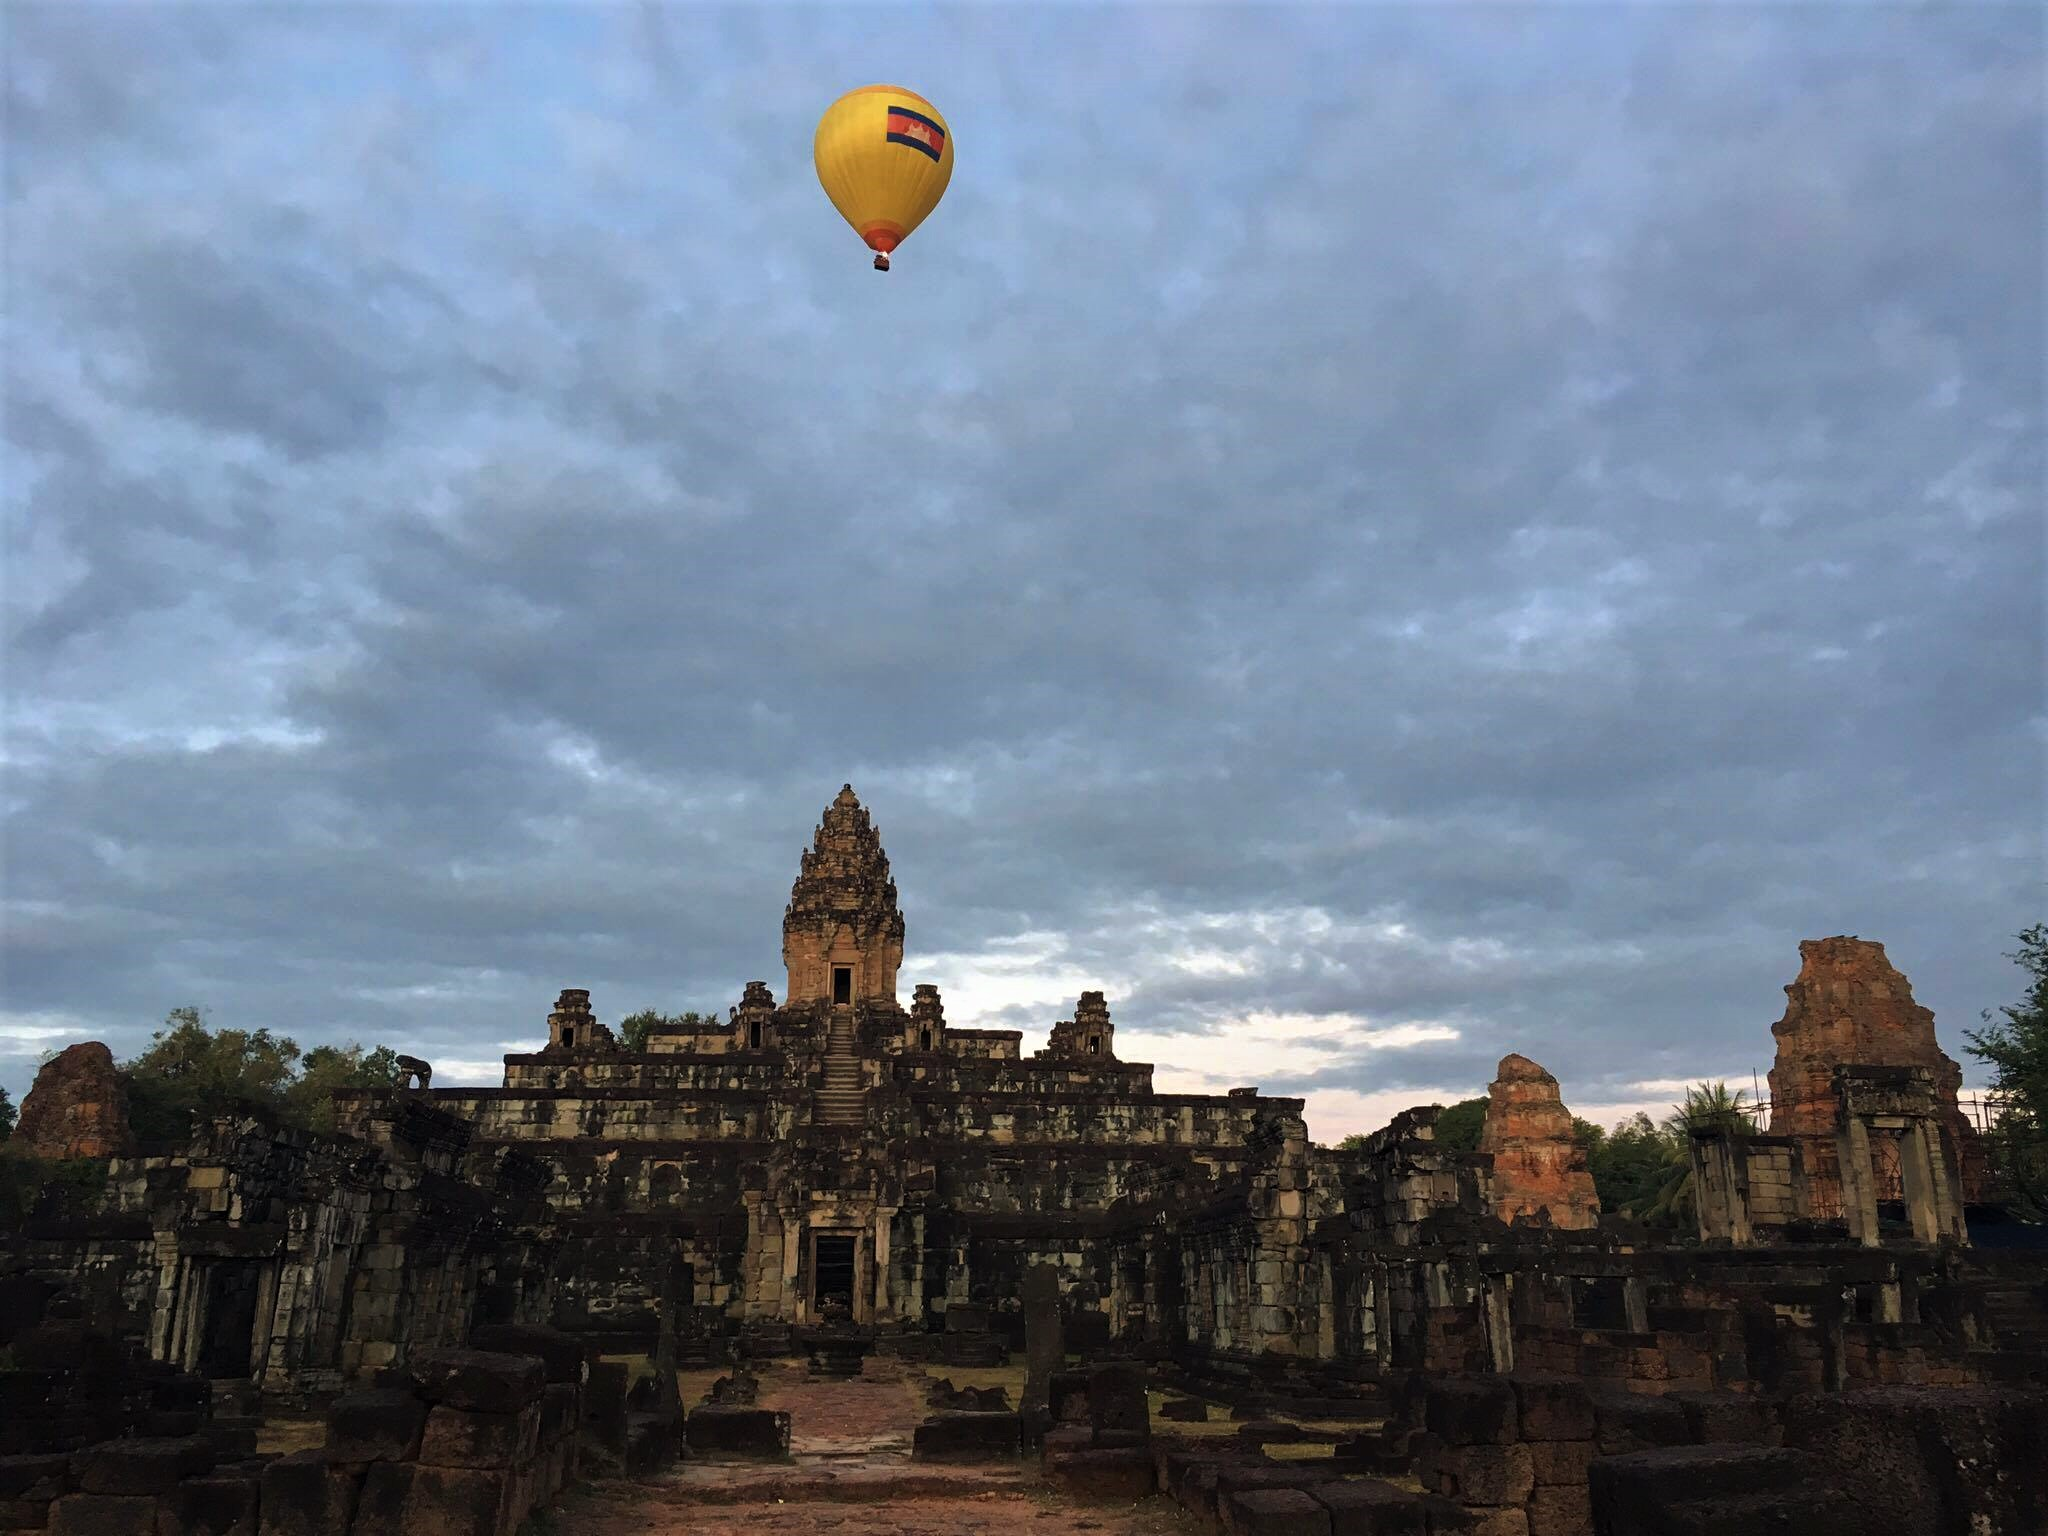 Hot Air Balloon at Bakong Temple